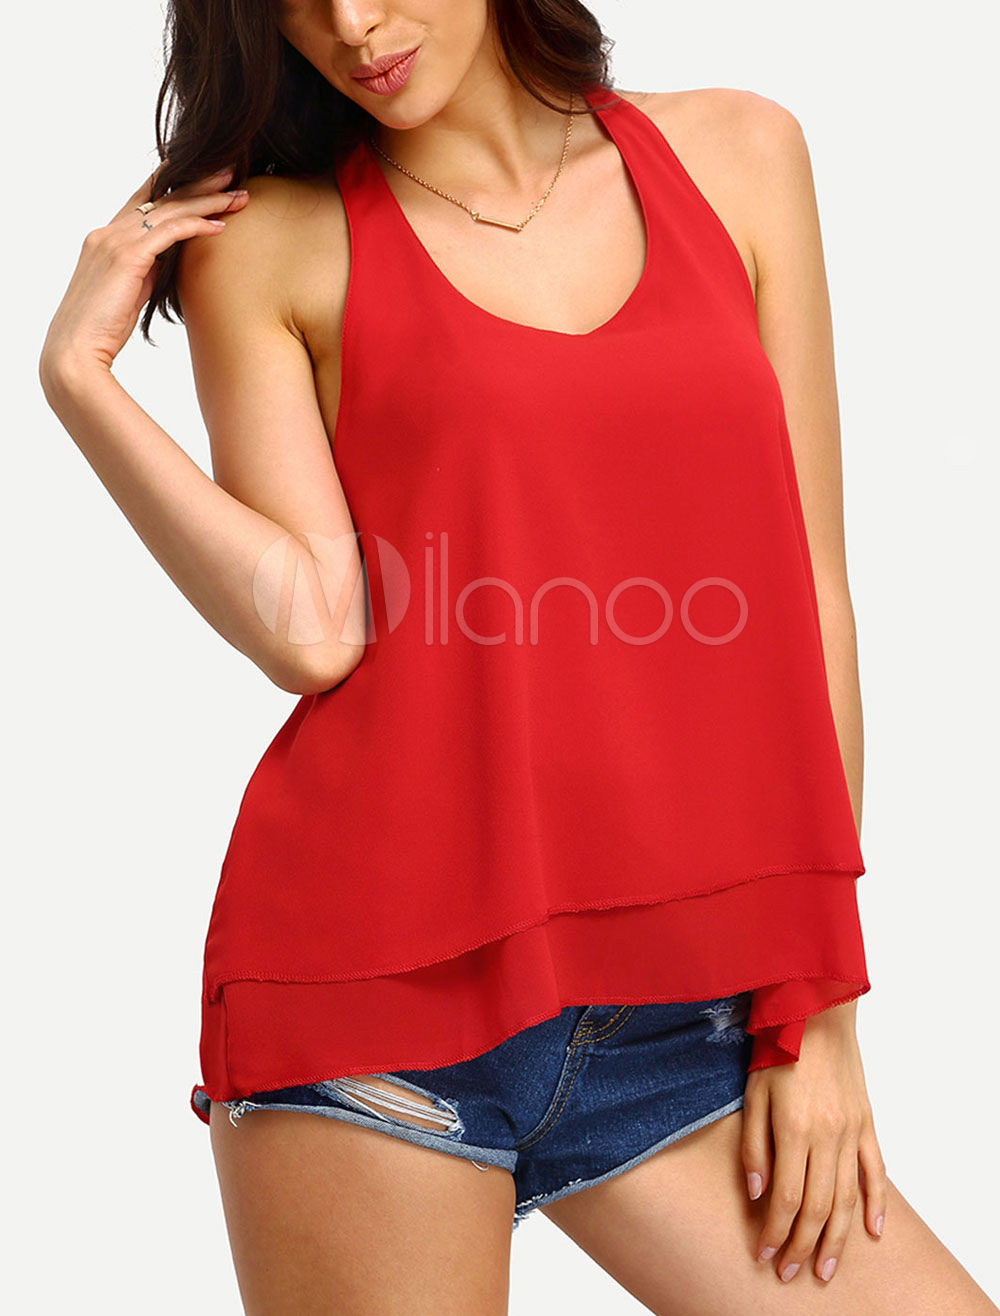 Chiffon Red Tanks Women's U Neck Sleeveless Backless Tiered Casual Top